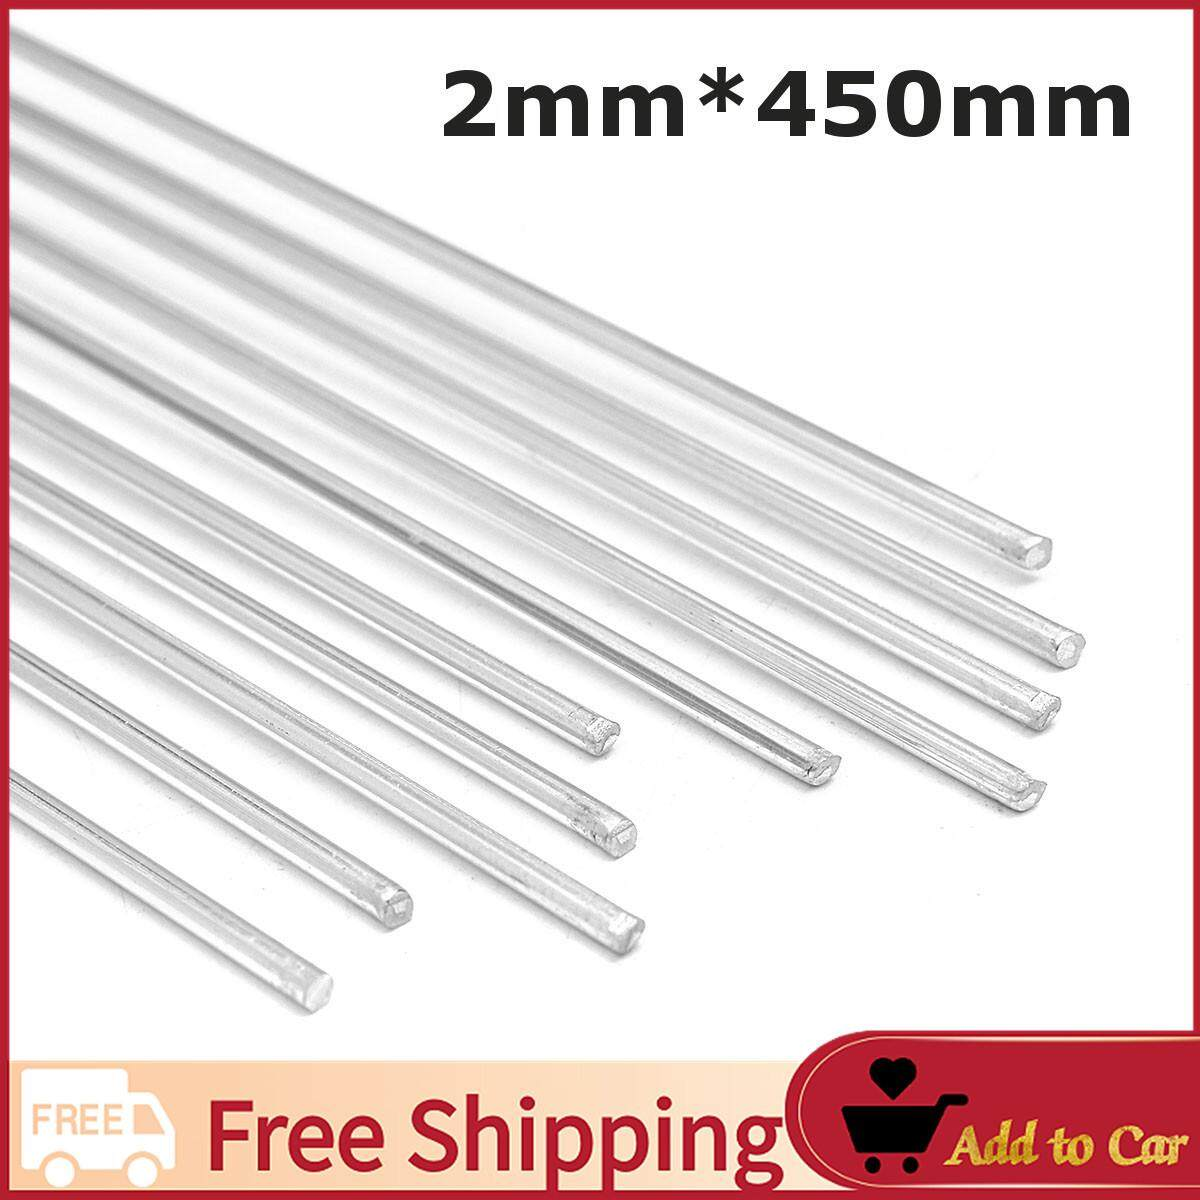 【Free Shipping】10pcs 2mm Aluminium Low Temperature Welding Brazing Rod For all AL Parts 45cm